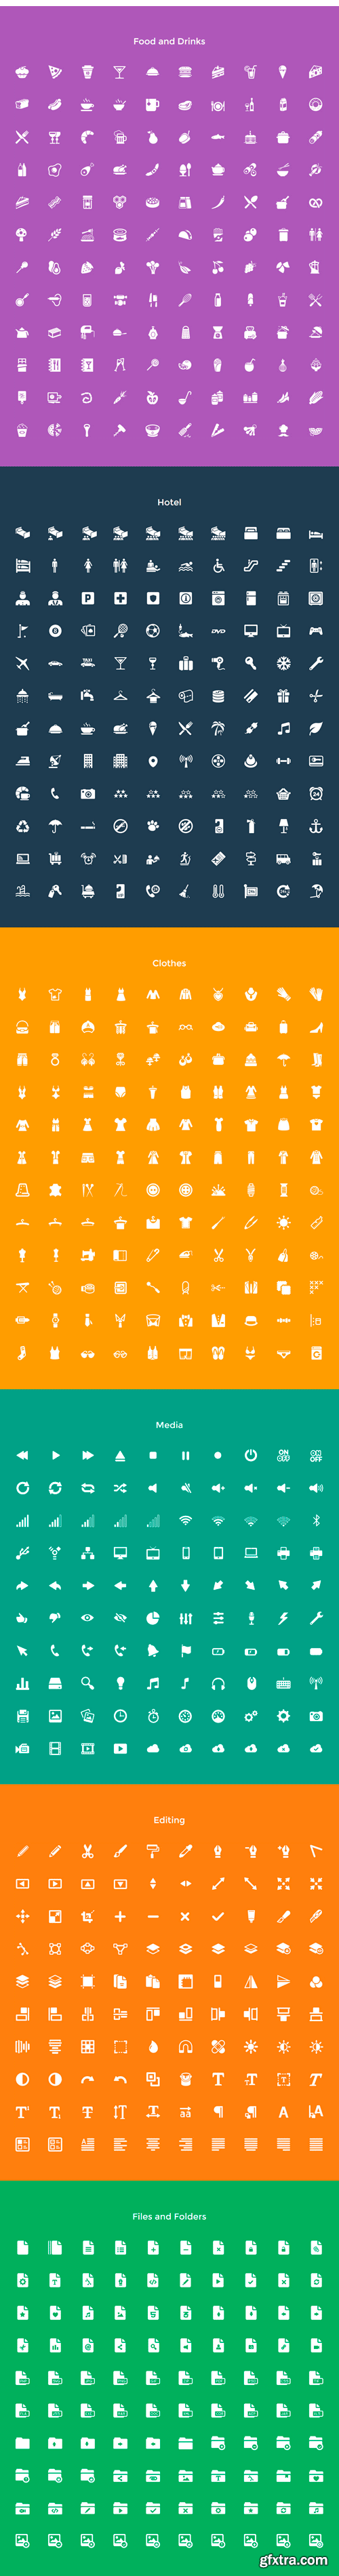 CM 289104 - Squid Ink Solid Icon Pack